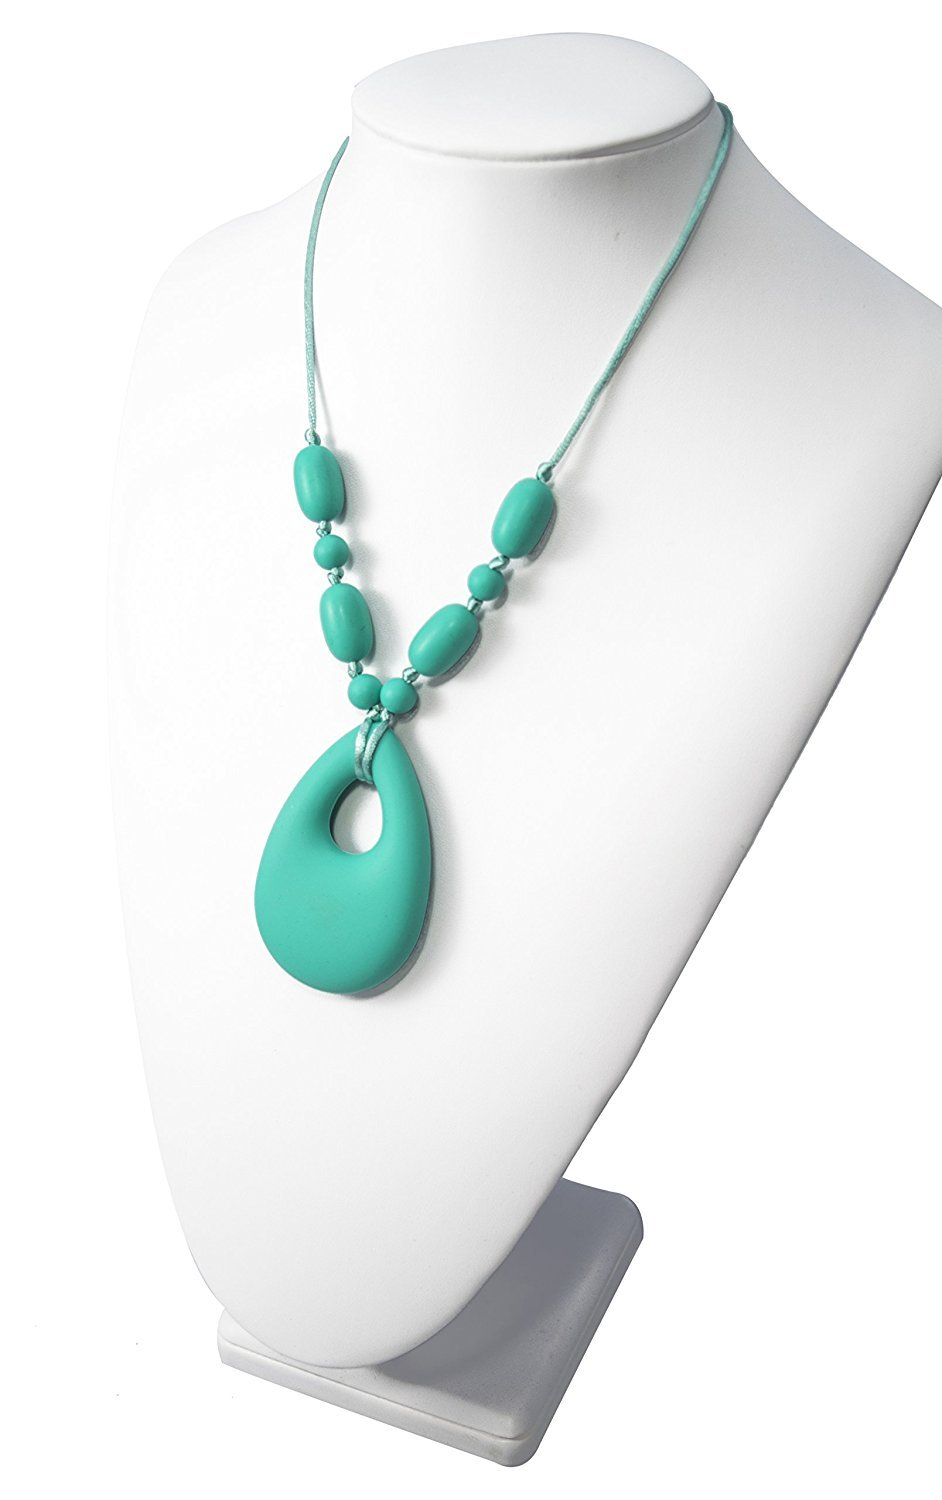 Chewy Jewels Silicone Teething Necklace - Oval Beads - Aqua